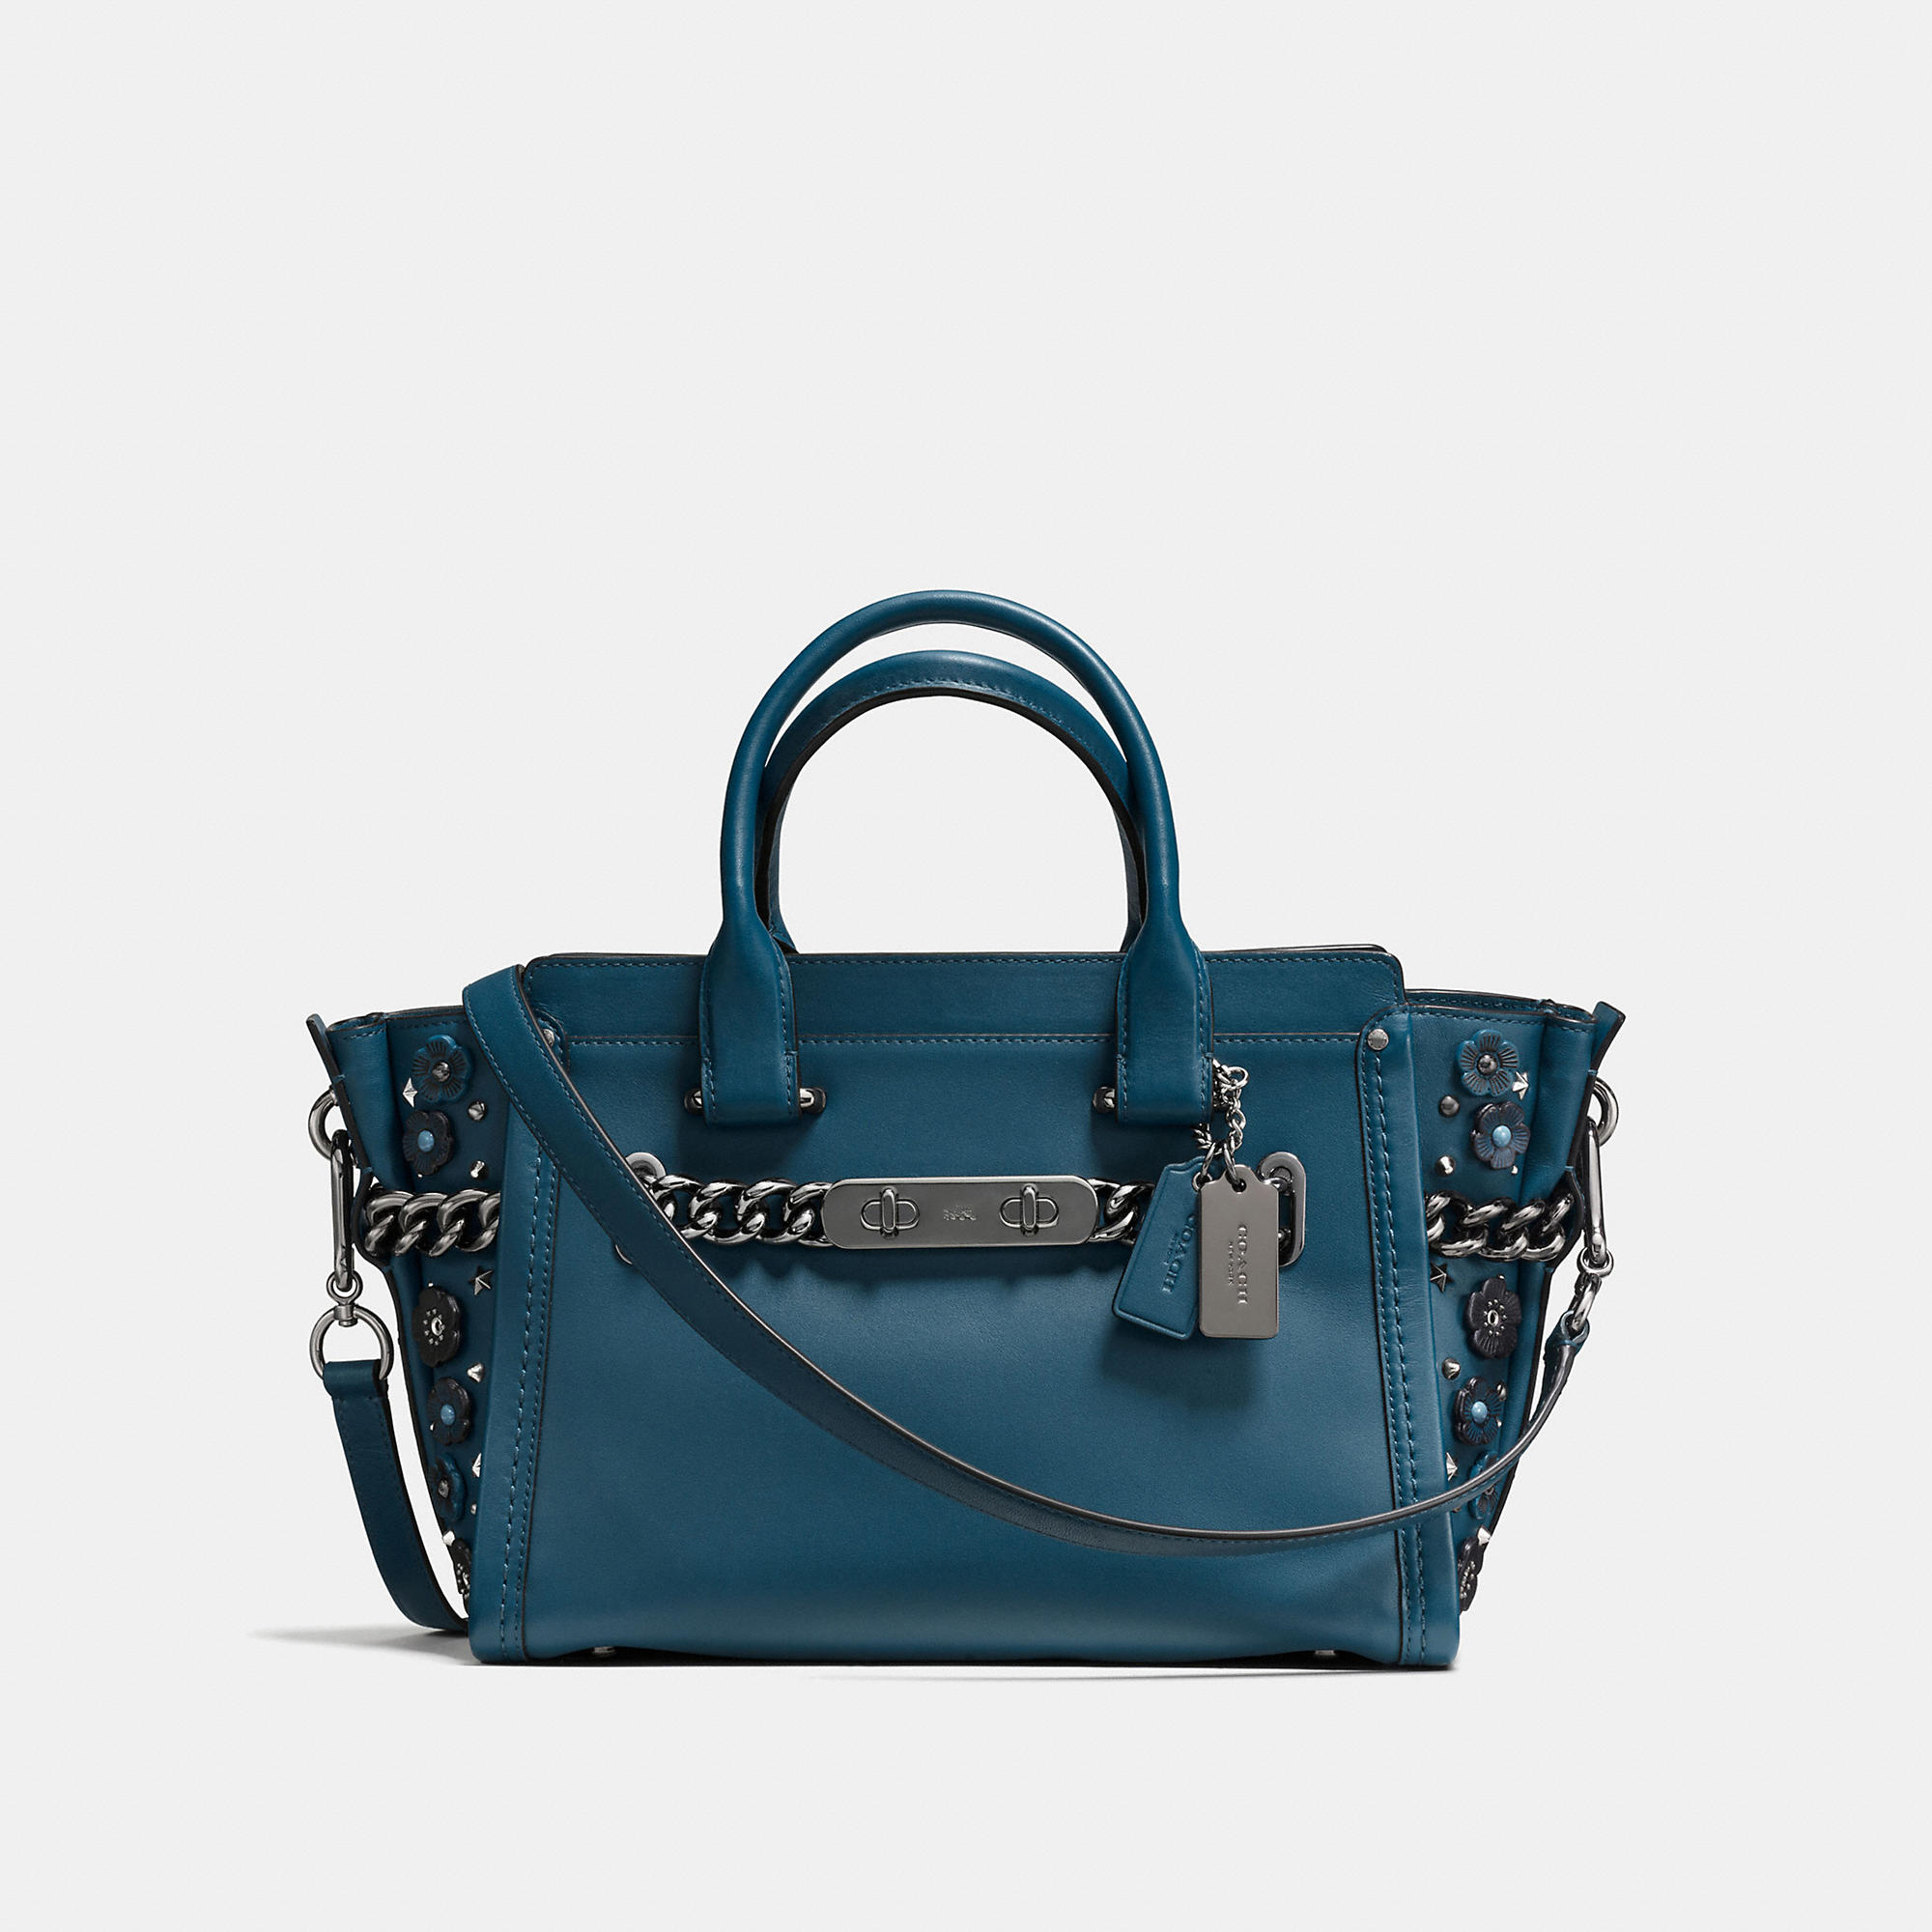 Coach Swagger 27 In Glovetanned Leather With Willow Floral Detail